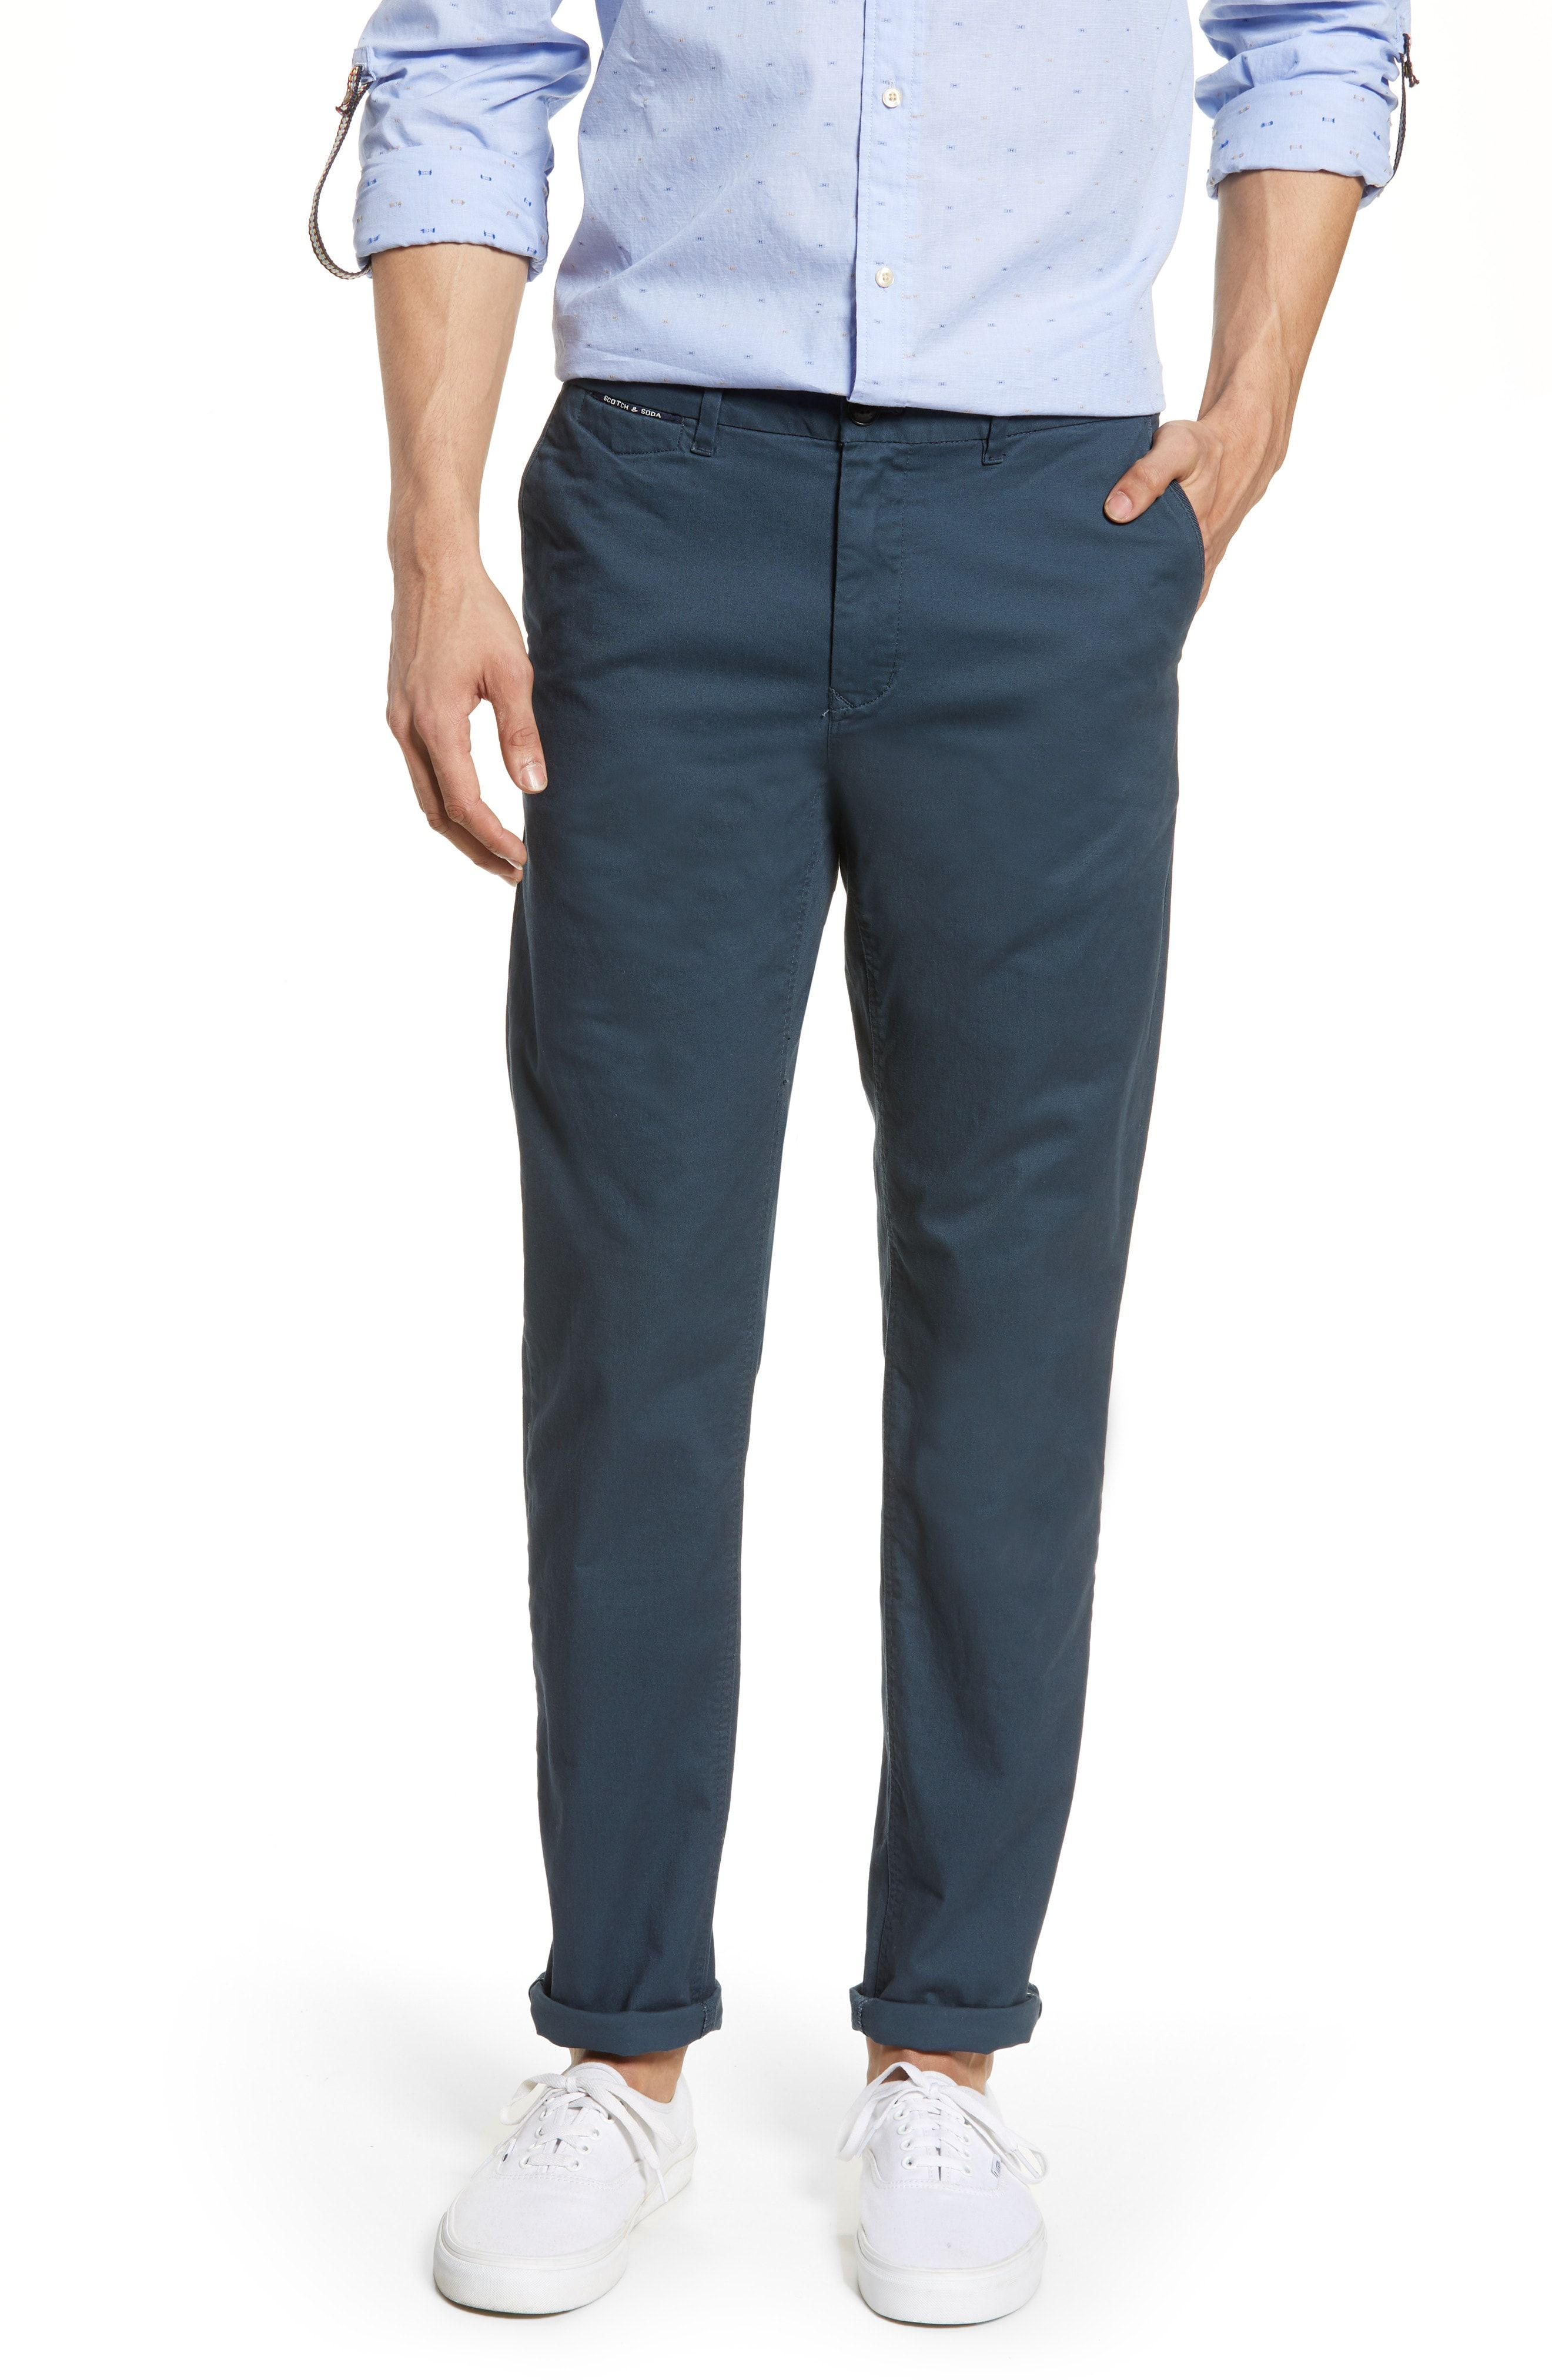 Mott Classic Fit Stretch Cotton Pants In Steel Cotton Pants Stretch Cotton Pants